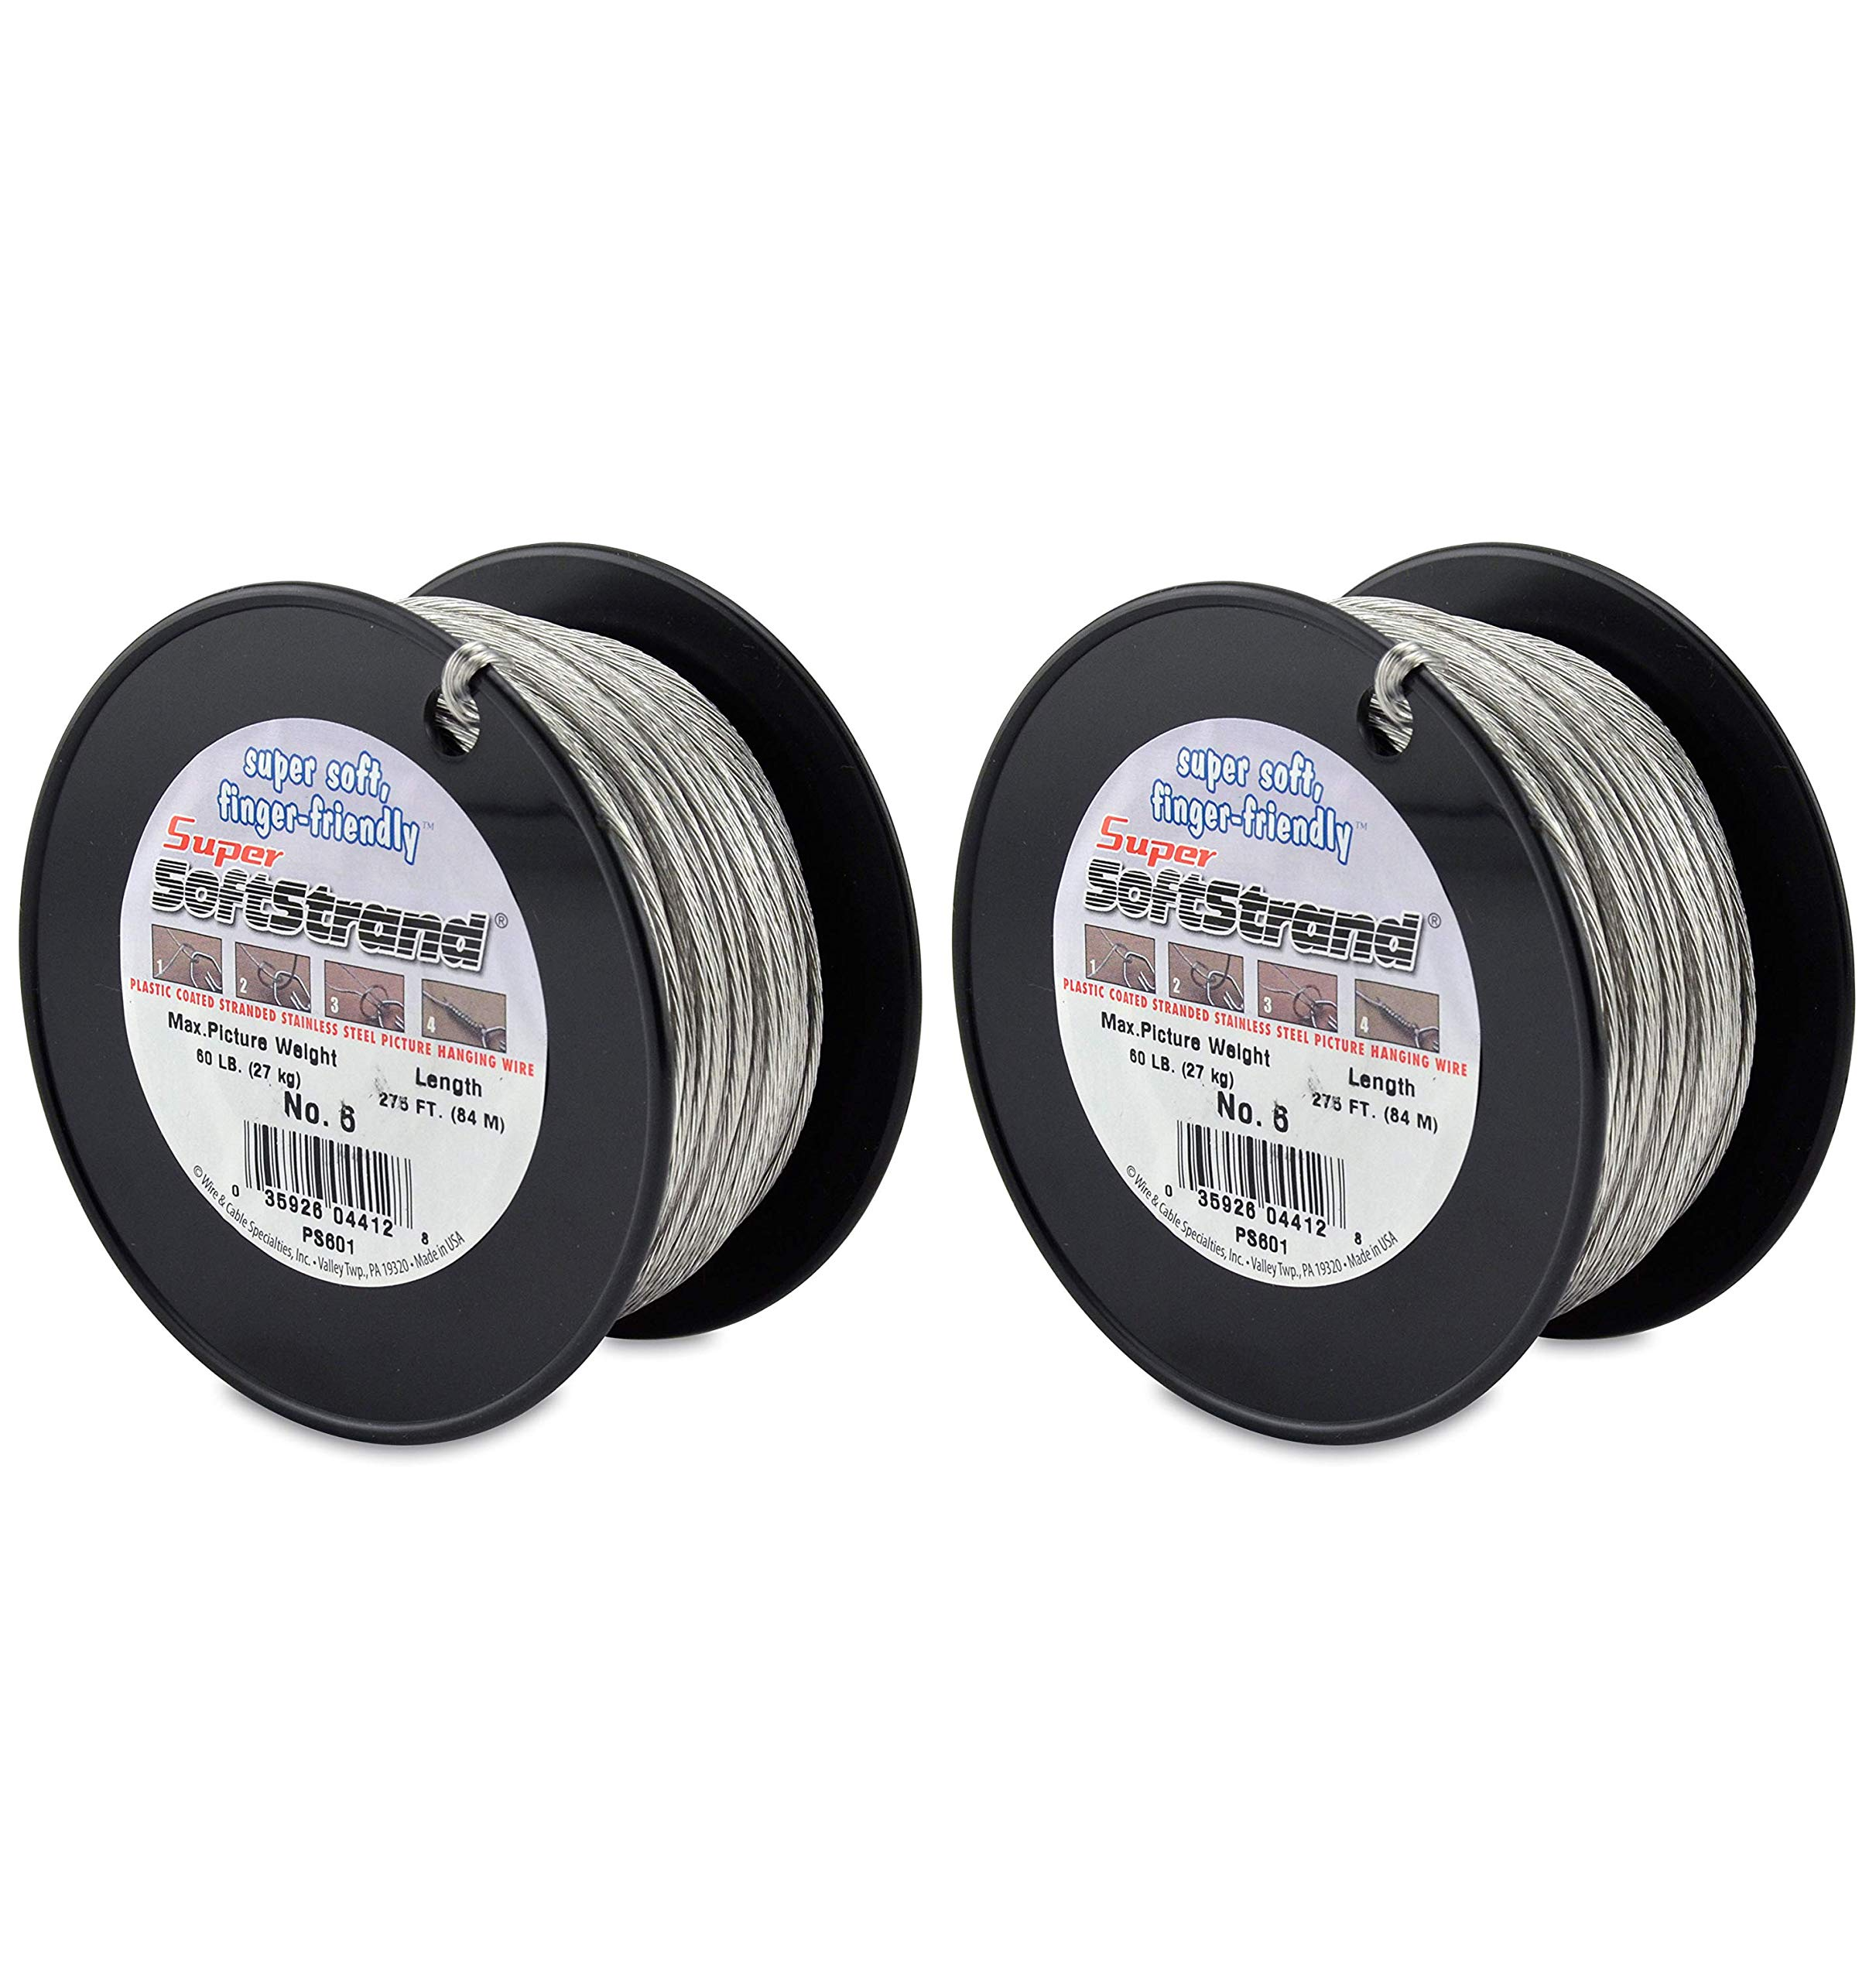 SuperSoftstrand Size 6-275-Feet Picture Wire Vinyl Coated Stranded Stainless Steel (Twо Pаck)